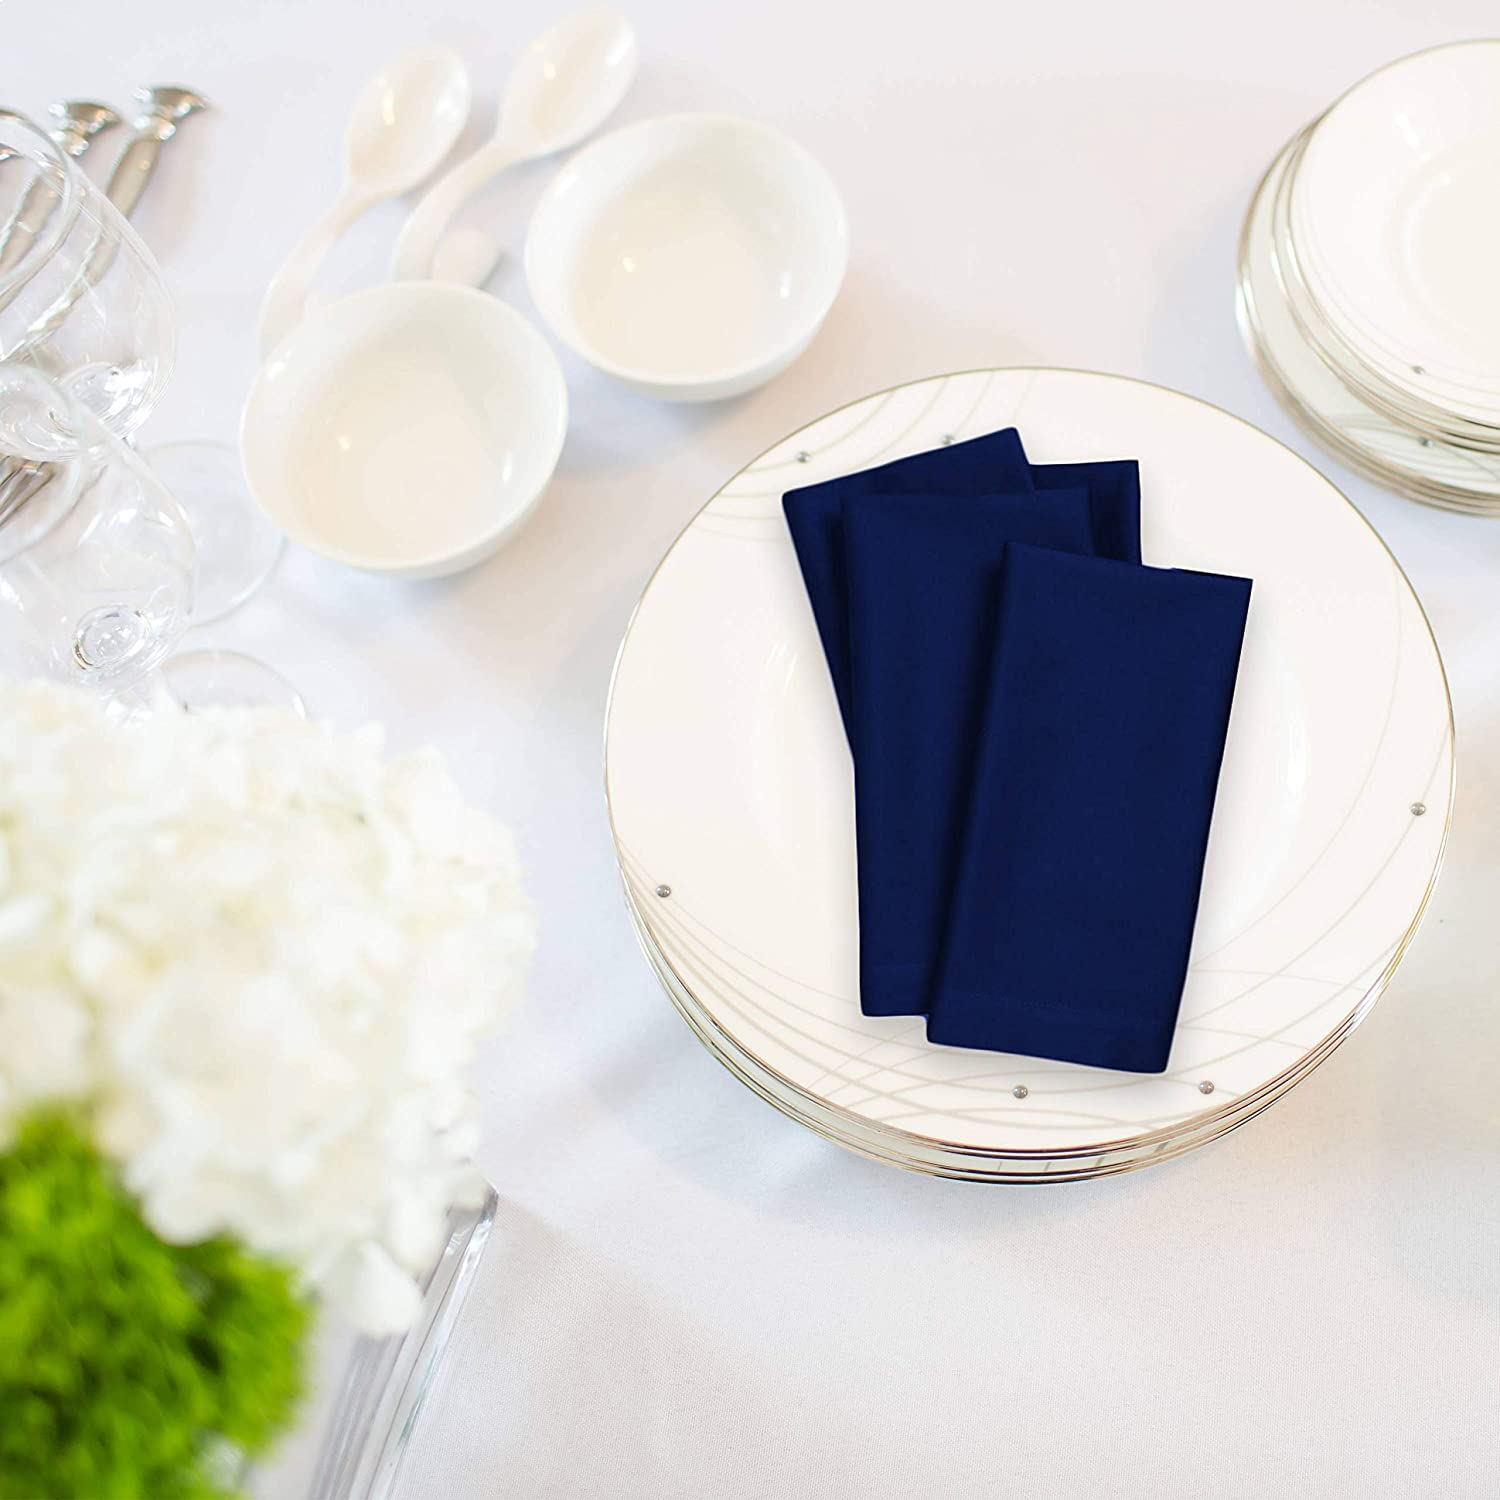 Kadut Cloth Napkins - 17 x 17 Inch Solid Navy Blue Washable Polyester Dinner Napkins - Set of 12 Napkins with Hemmed Edges - Great for Weddings, Parties, Holiday Dinner & More: Home & Kitchen